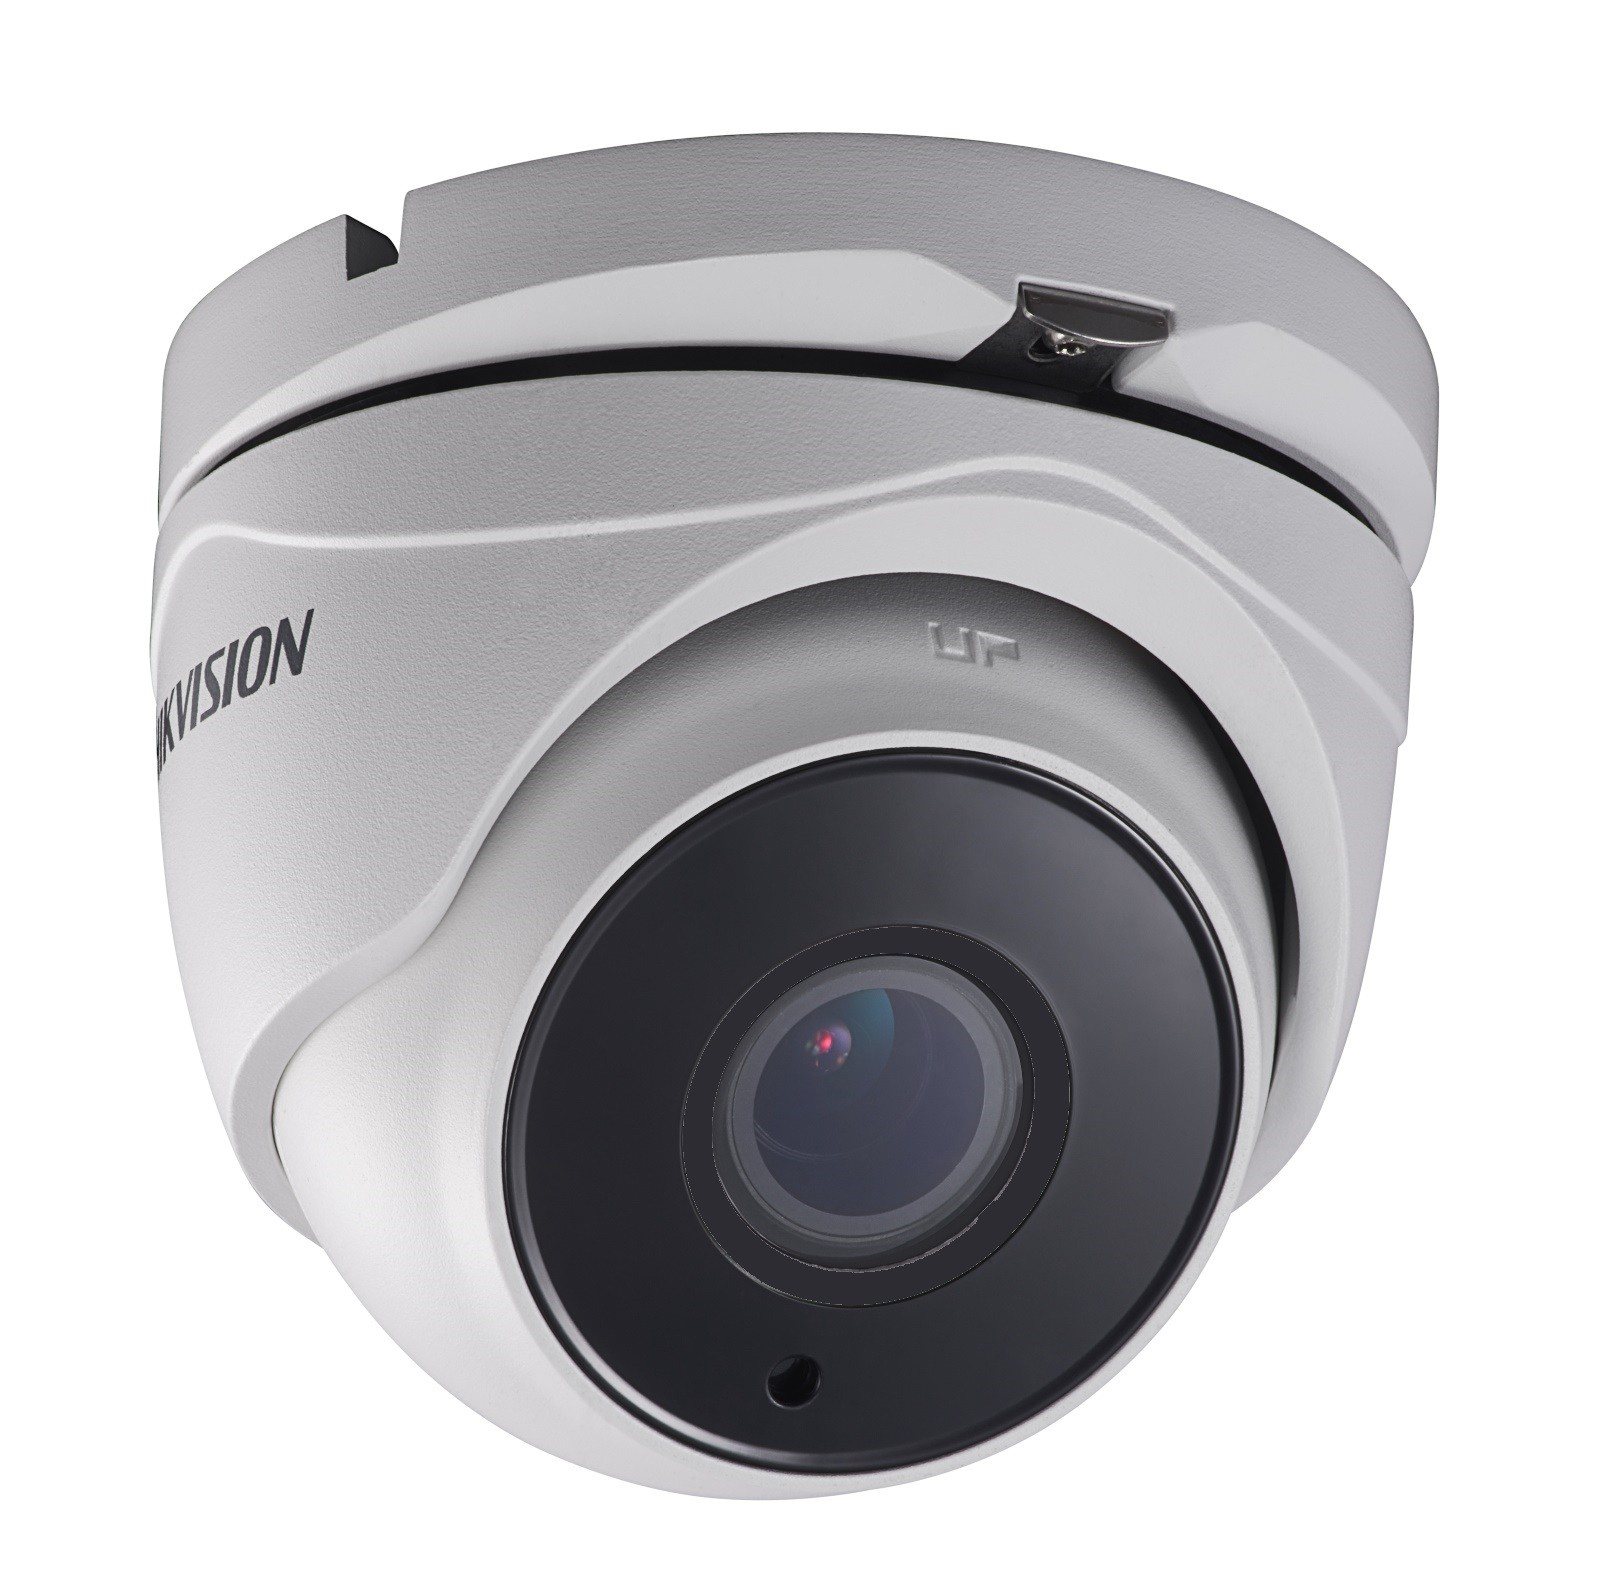 Hikvision DS-2CE56H1T-IT3Z 5MP Exir 40M IR HD-TVI Turbo 2.8-12MM Motorized Turret Dome CCTV Security Camera